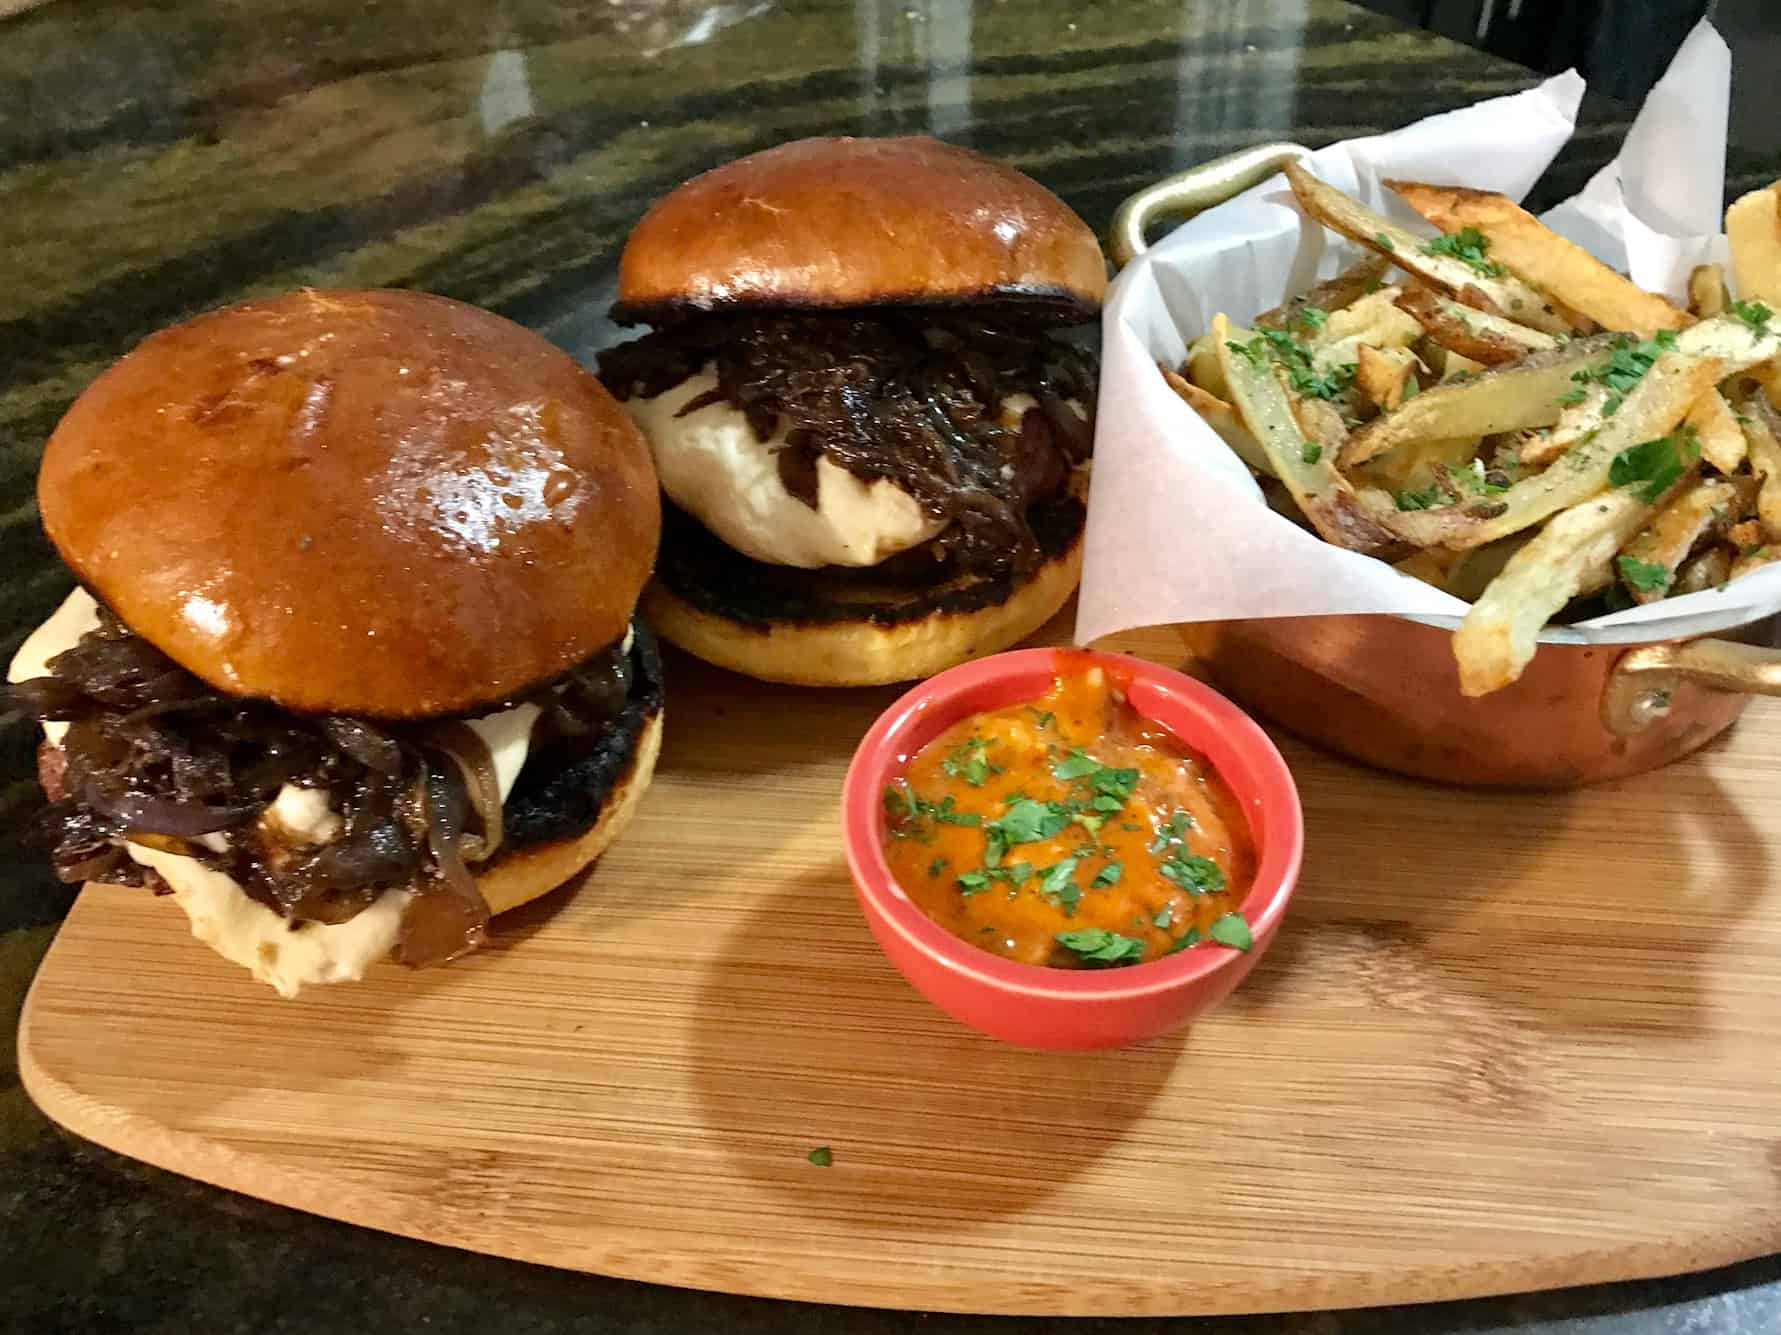 Home Chef Swiss Burgers on cutting board served with fries and small bowl of sauce